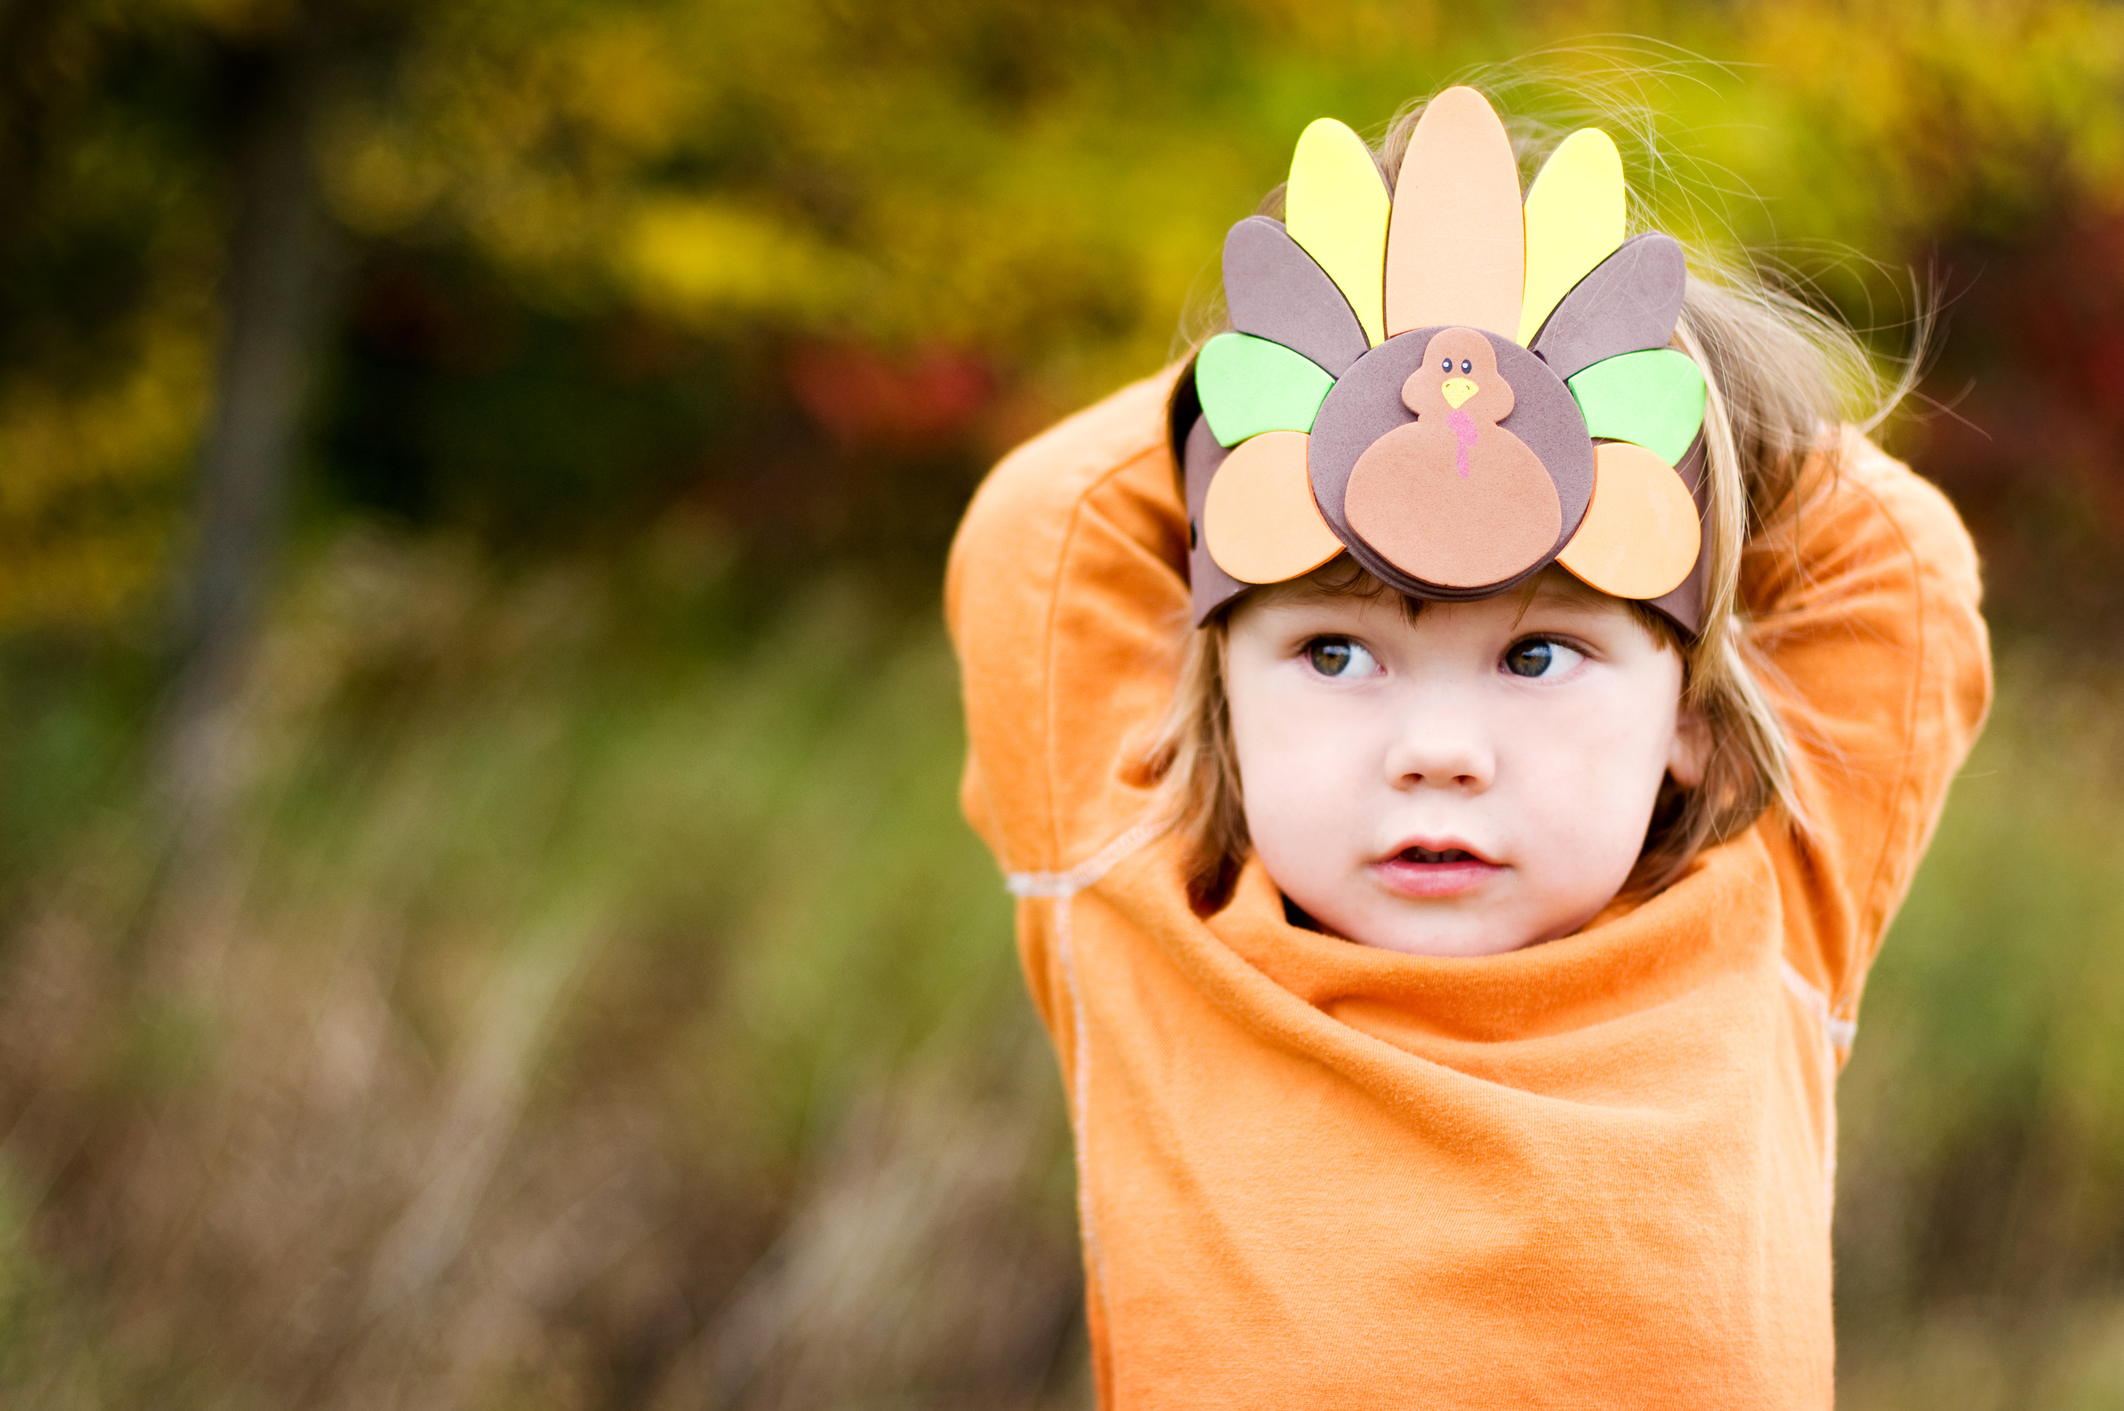 Little boy with a Turkey hat.  Focus on the hat.